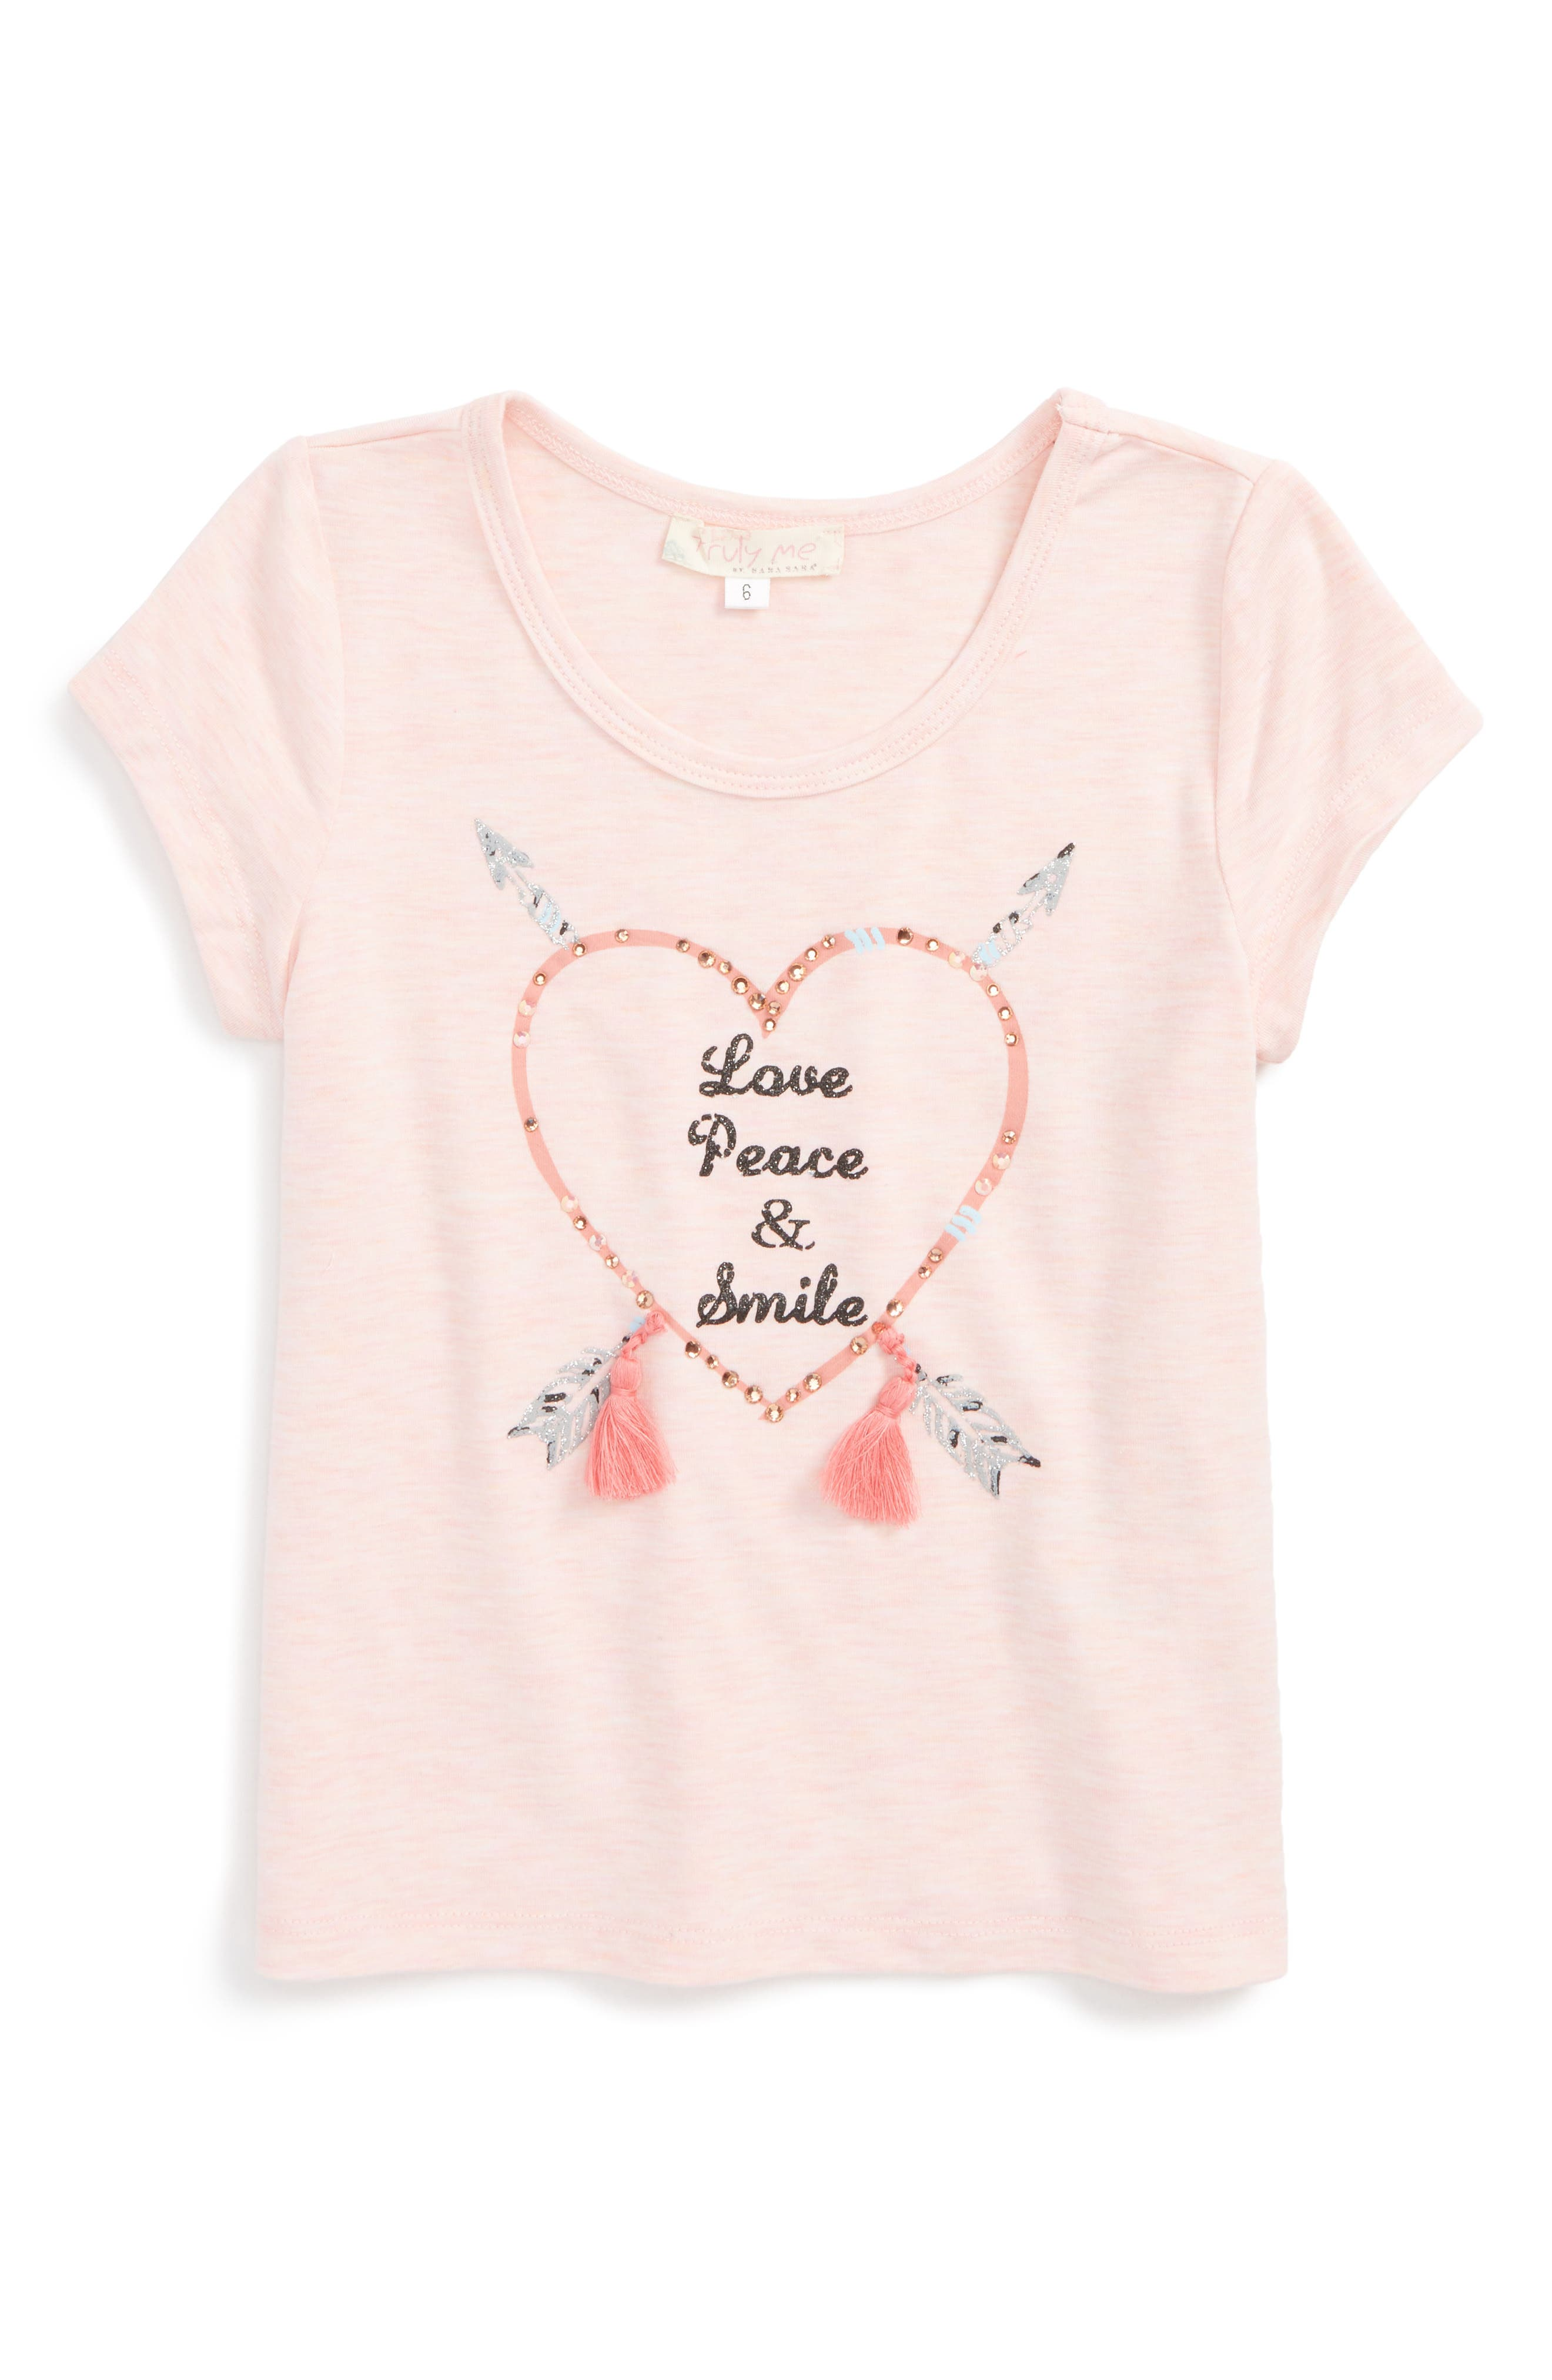 Love, Peace, Smile Embellished Graphic Tee,                             Main thumbnail 1, color,                             680